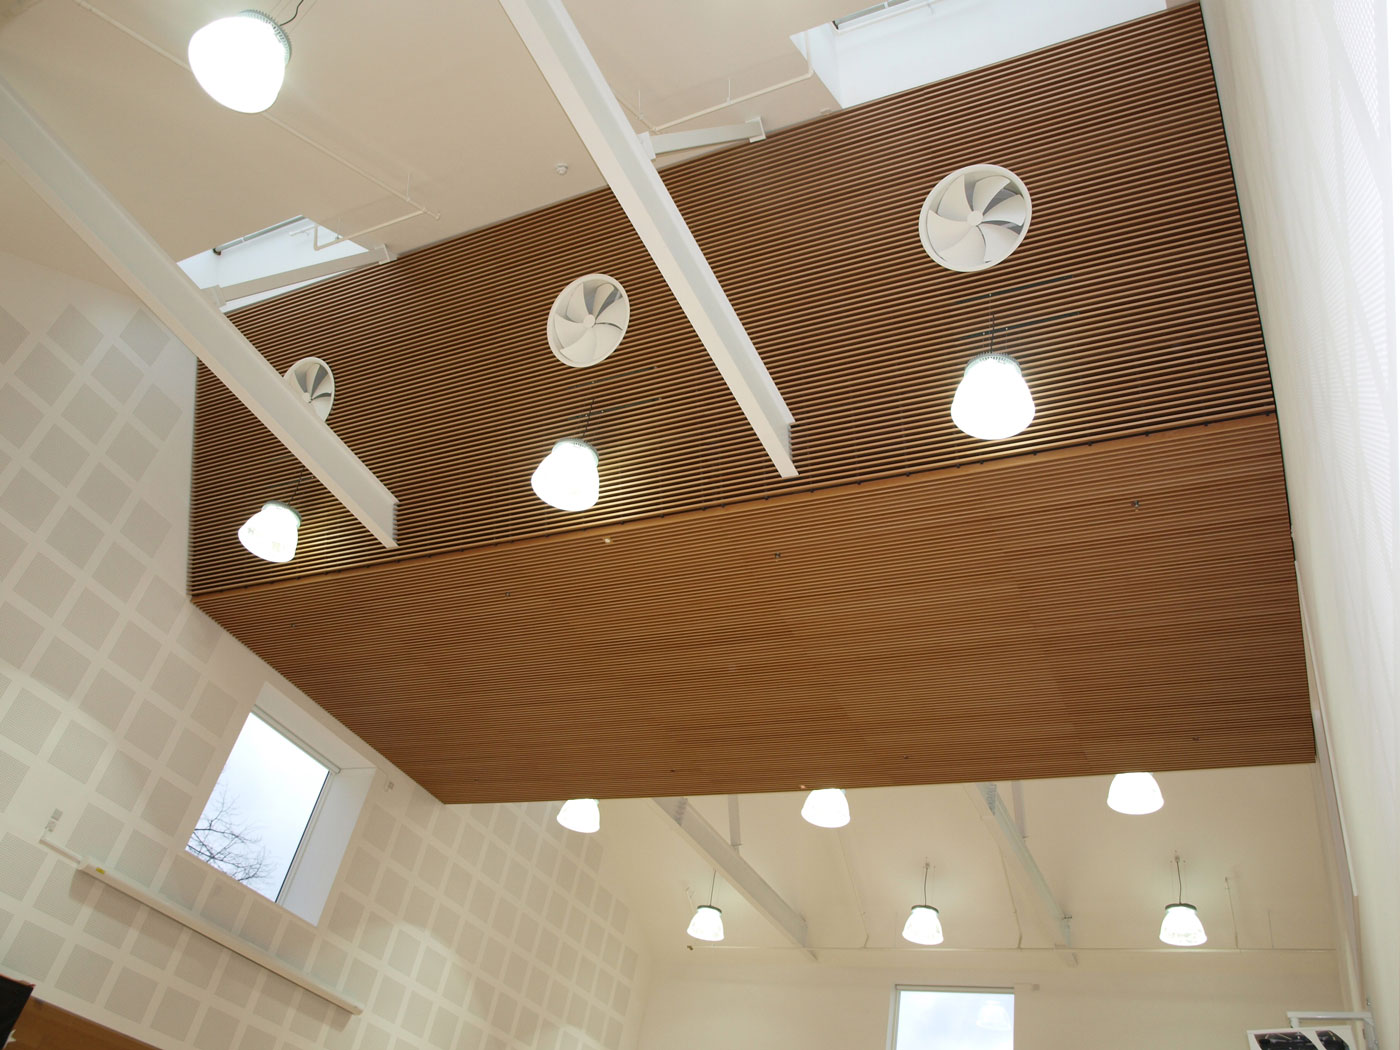 abp wid room compare crop armstrong hei ceiling ceilings suspended en residential us systems tiles fit acoustic